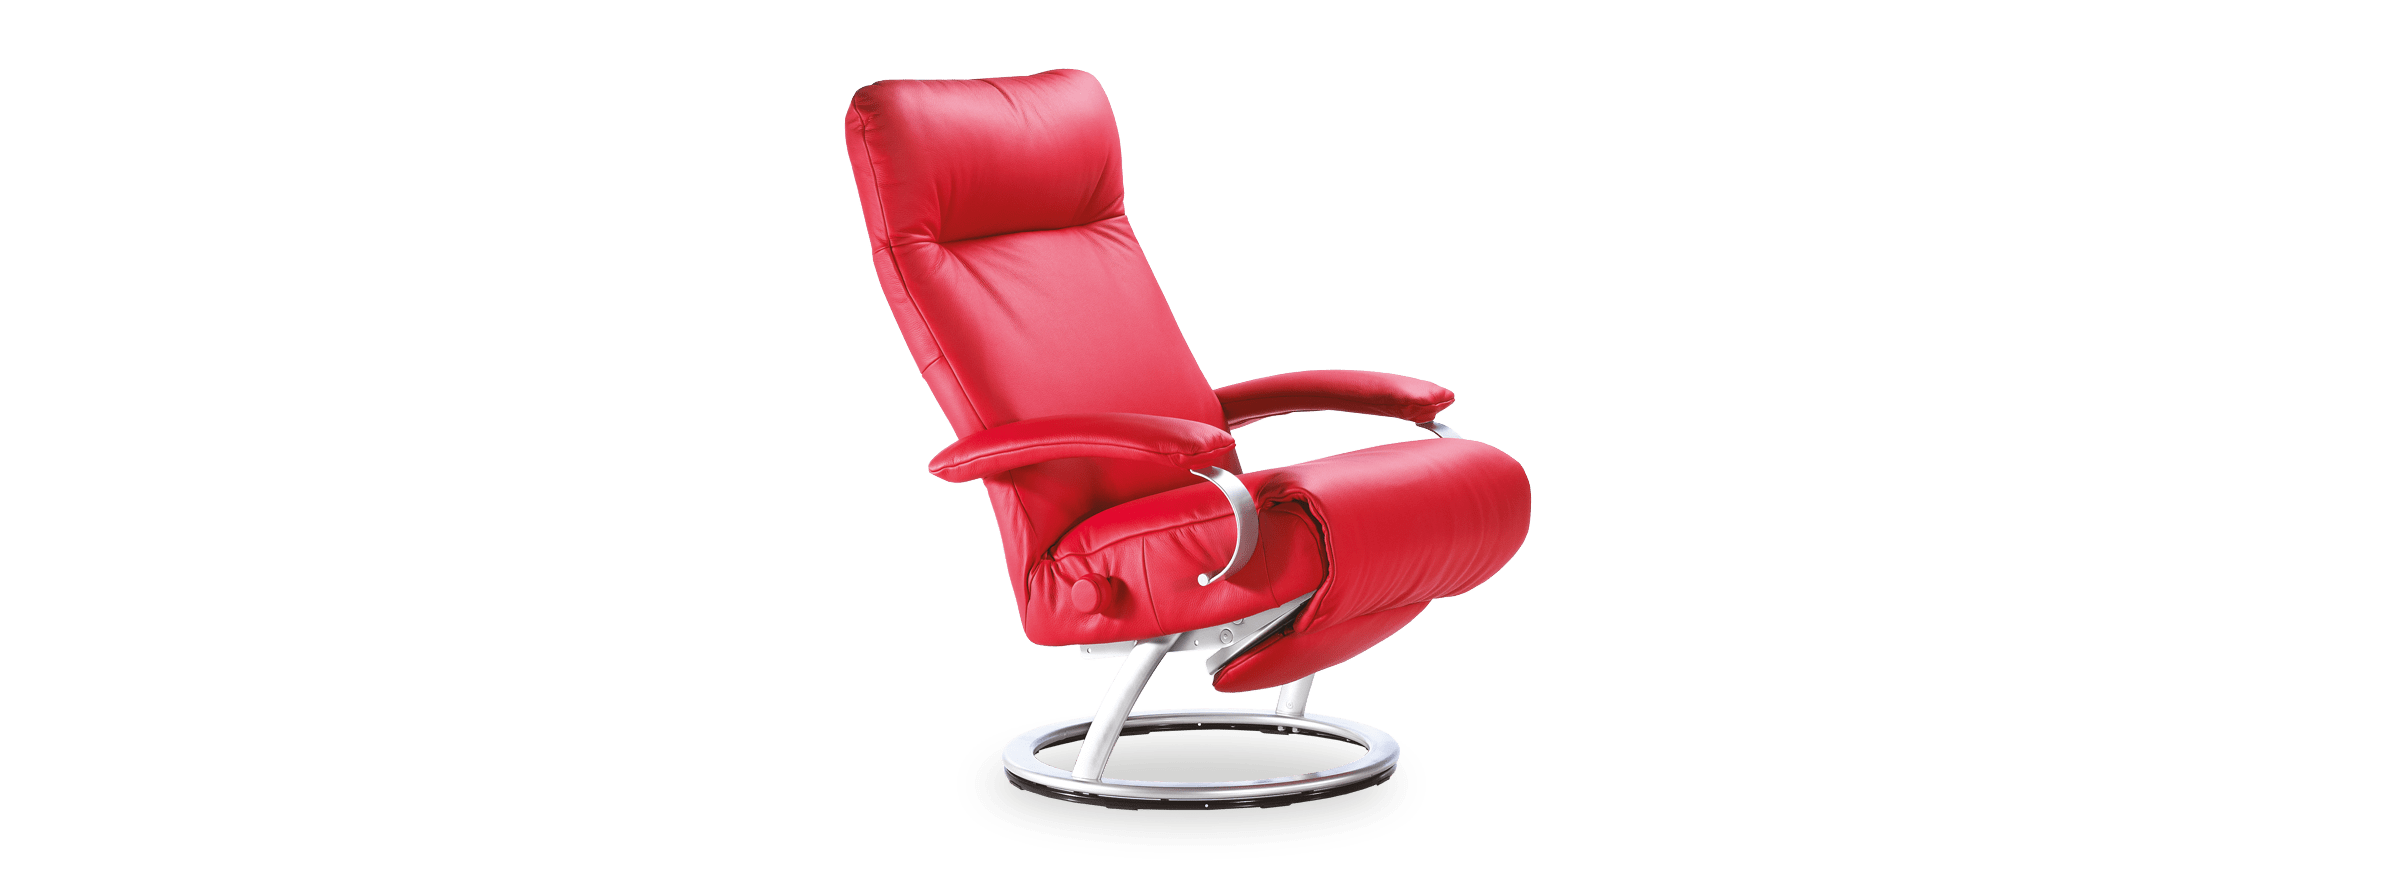 Neology Fauteuils Relax Quasar Neology